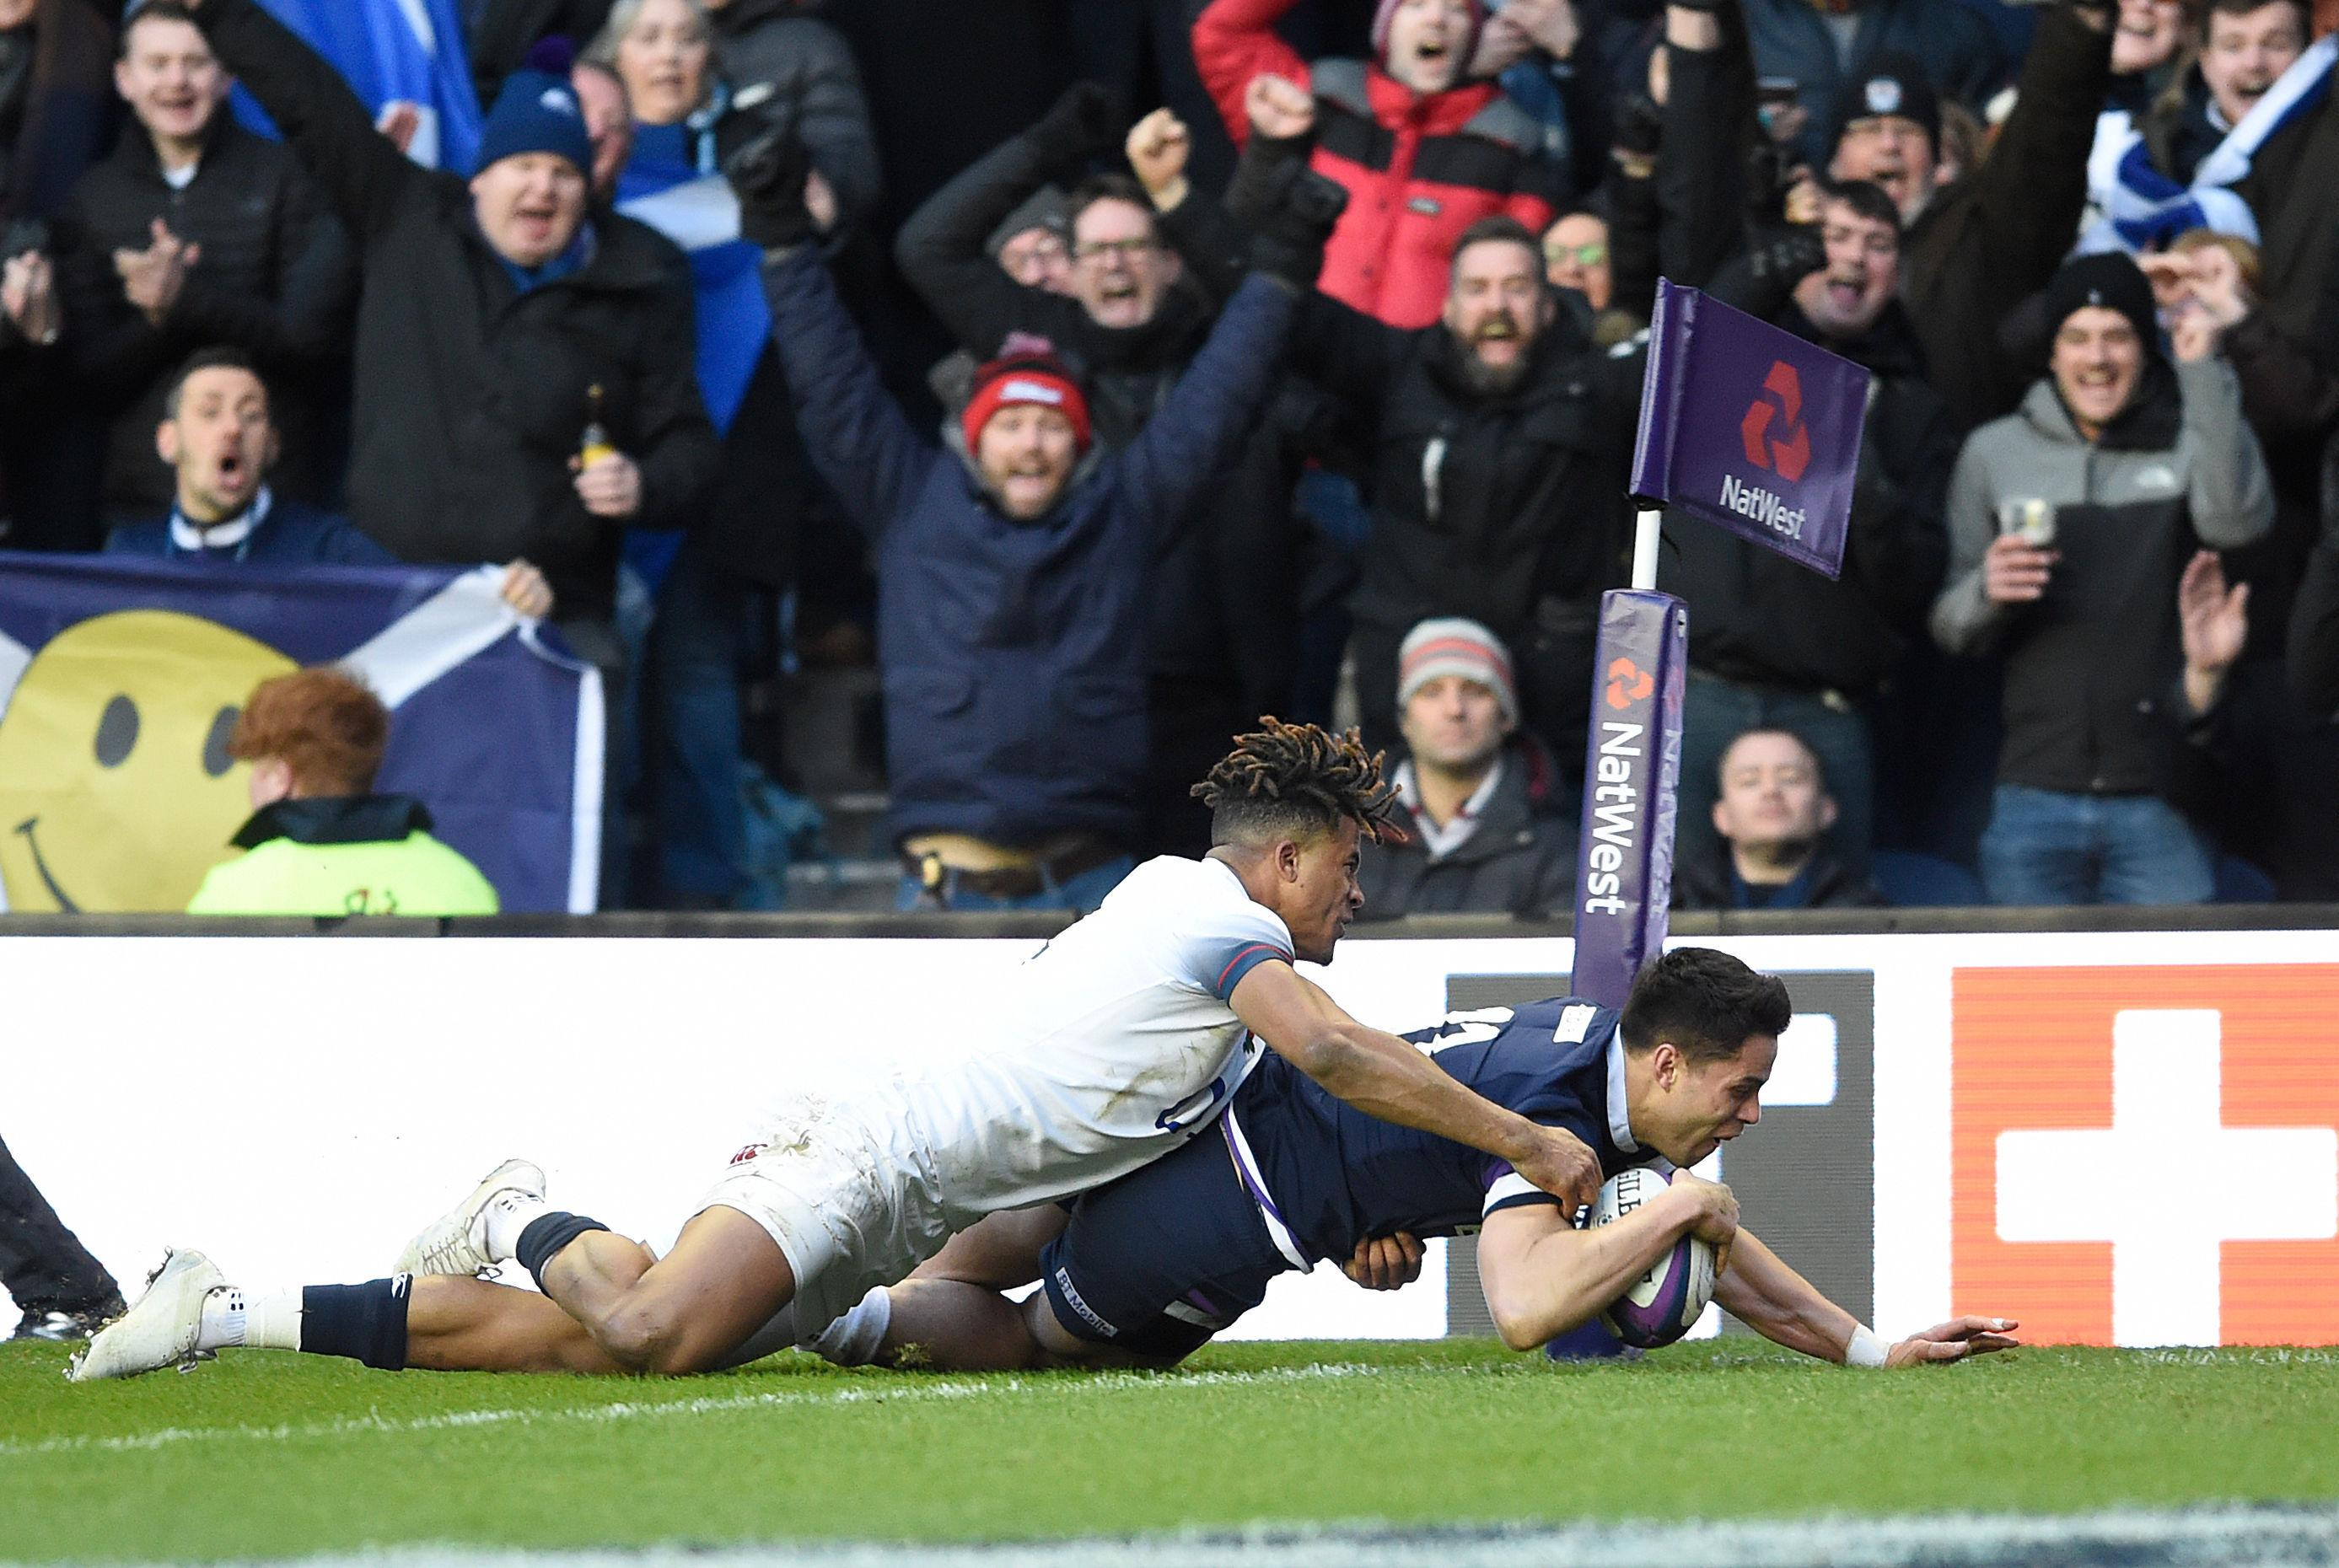 Scotland's Sean Maitland powers through to score his side's second try